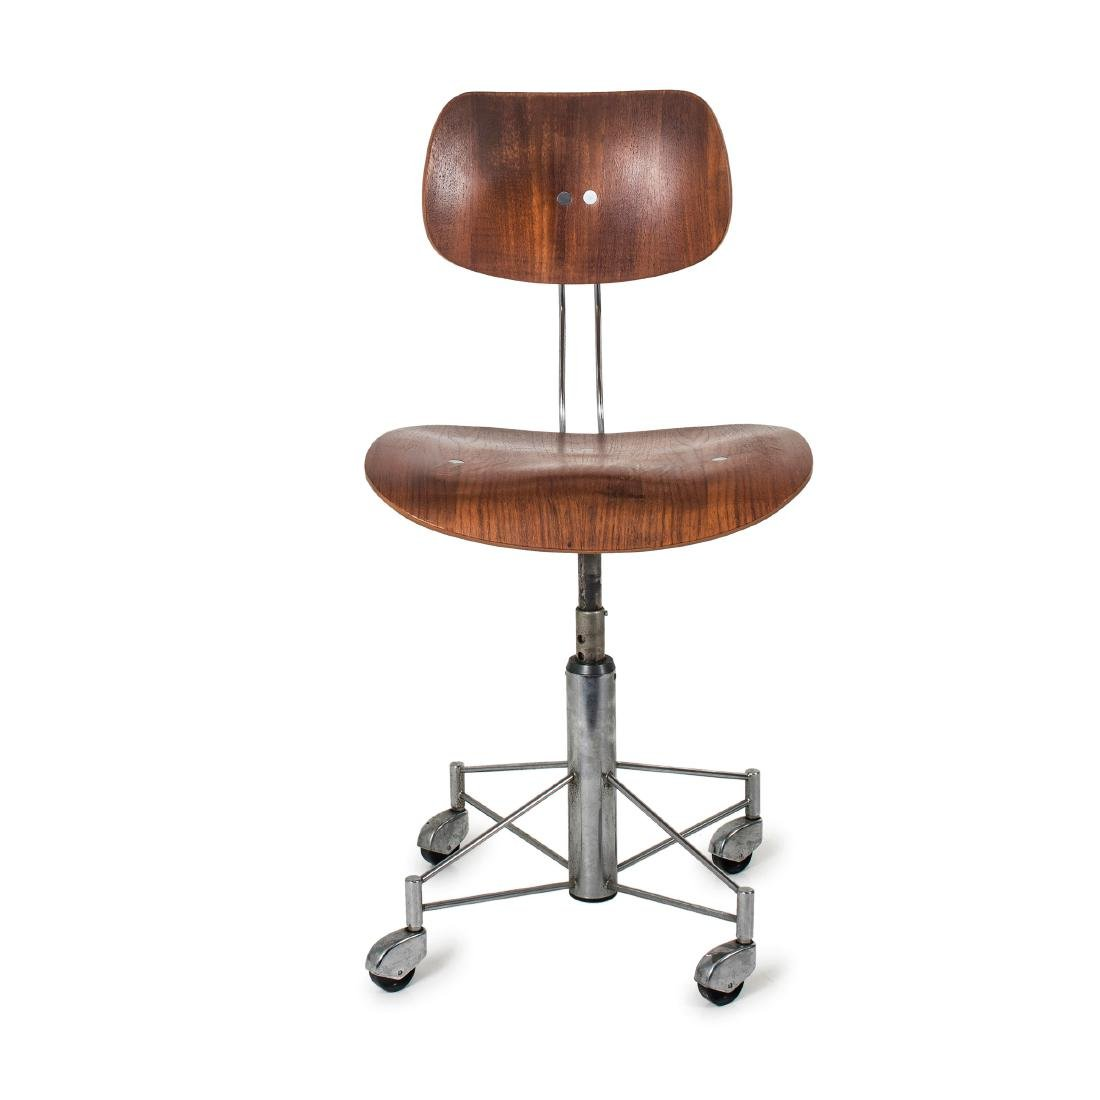 'SE 140R' desk chair, 1957